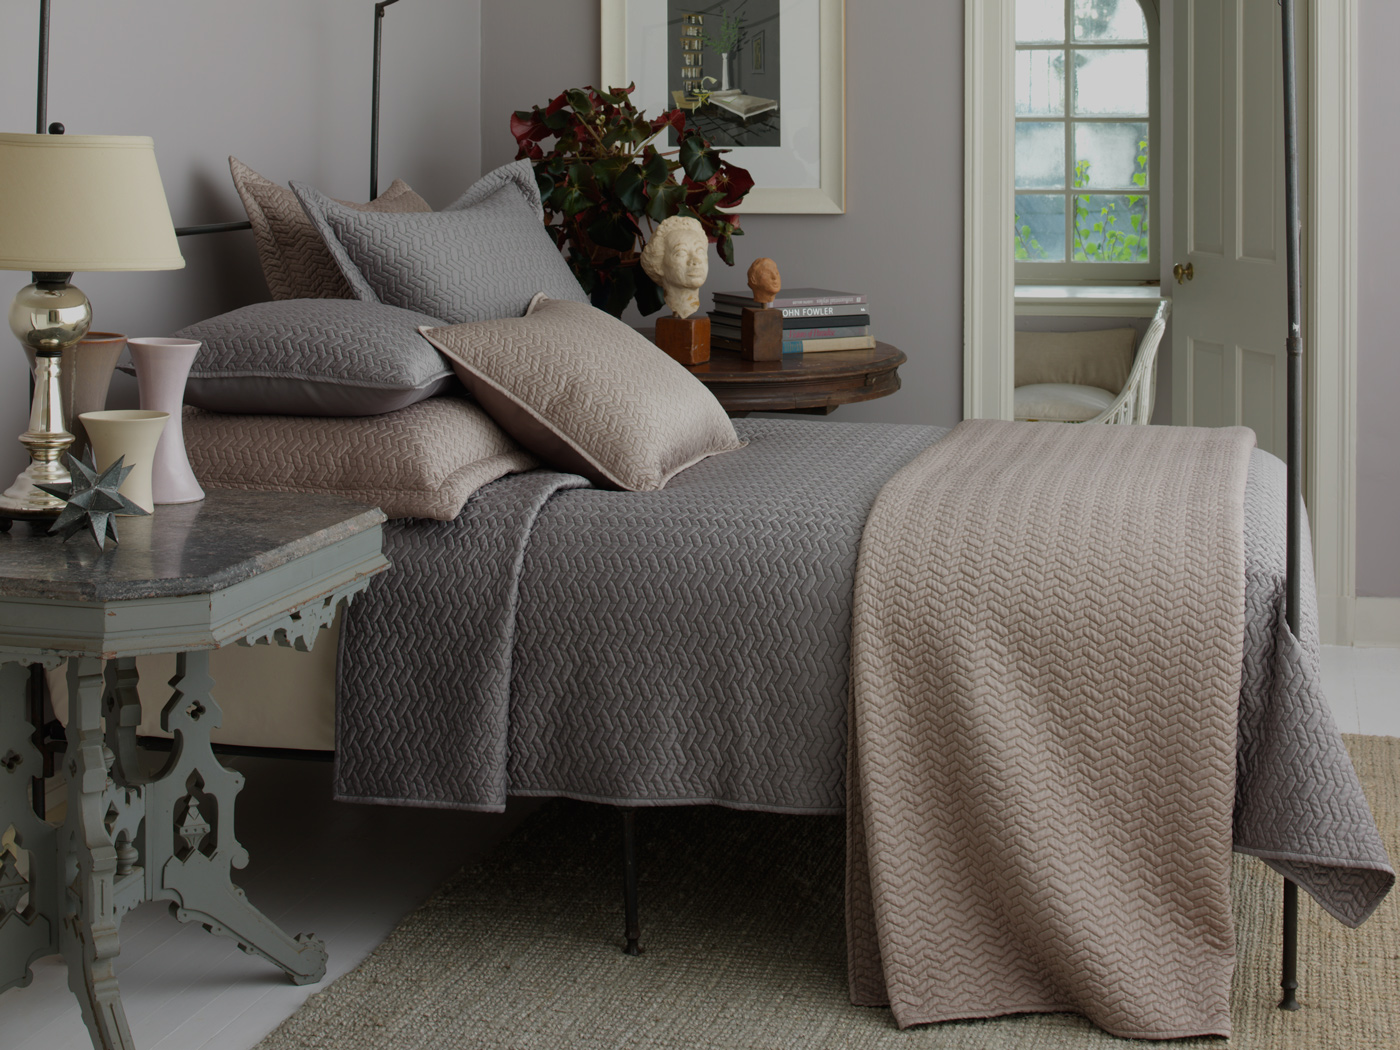 Exquisite Dransfield and Ross Furniture for Home Ideas: Admirable Dransfield And Ross With Duvet Cover And Rug